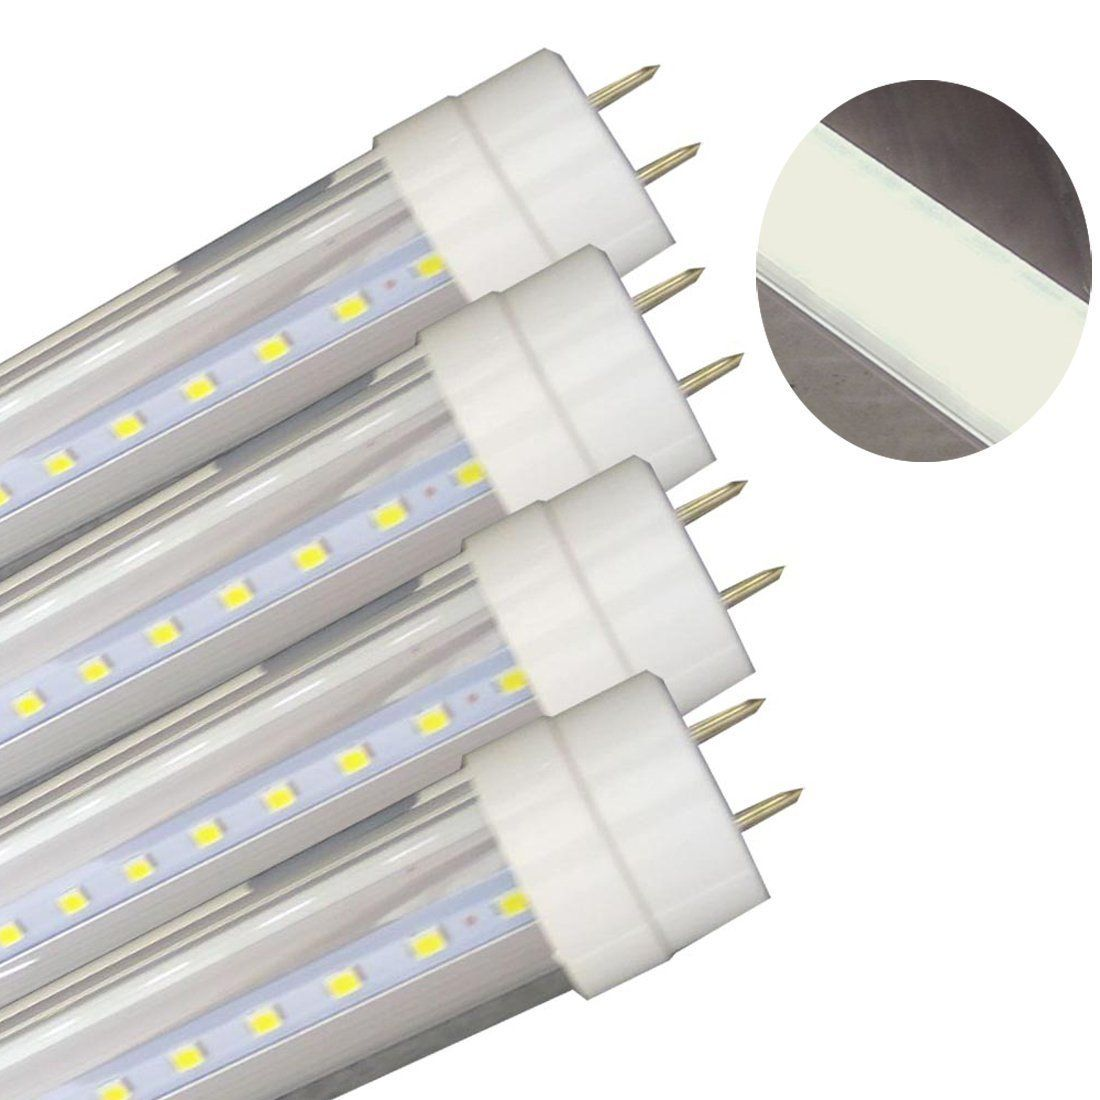 T8 Led Tube 9w Replacement Andlt 40w Fluorescent Lamp Lightsandgt 2ft Dualended Power Cold White 6000k2000lmclear Cove Fluorescent Lamp Led Light Bulbs T8 Led